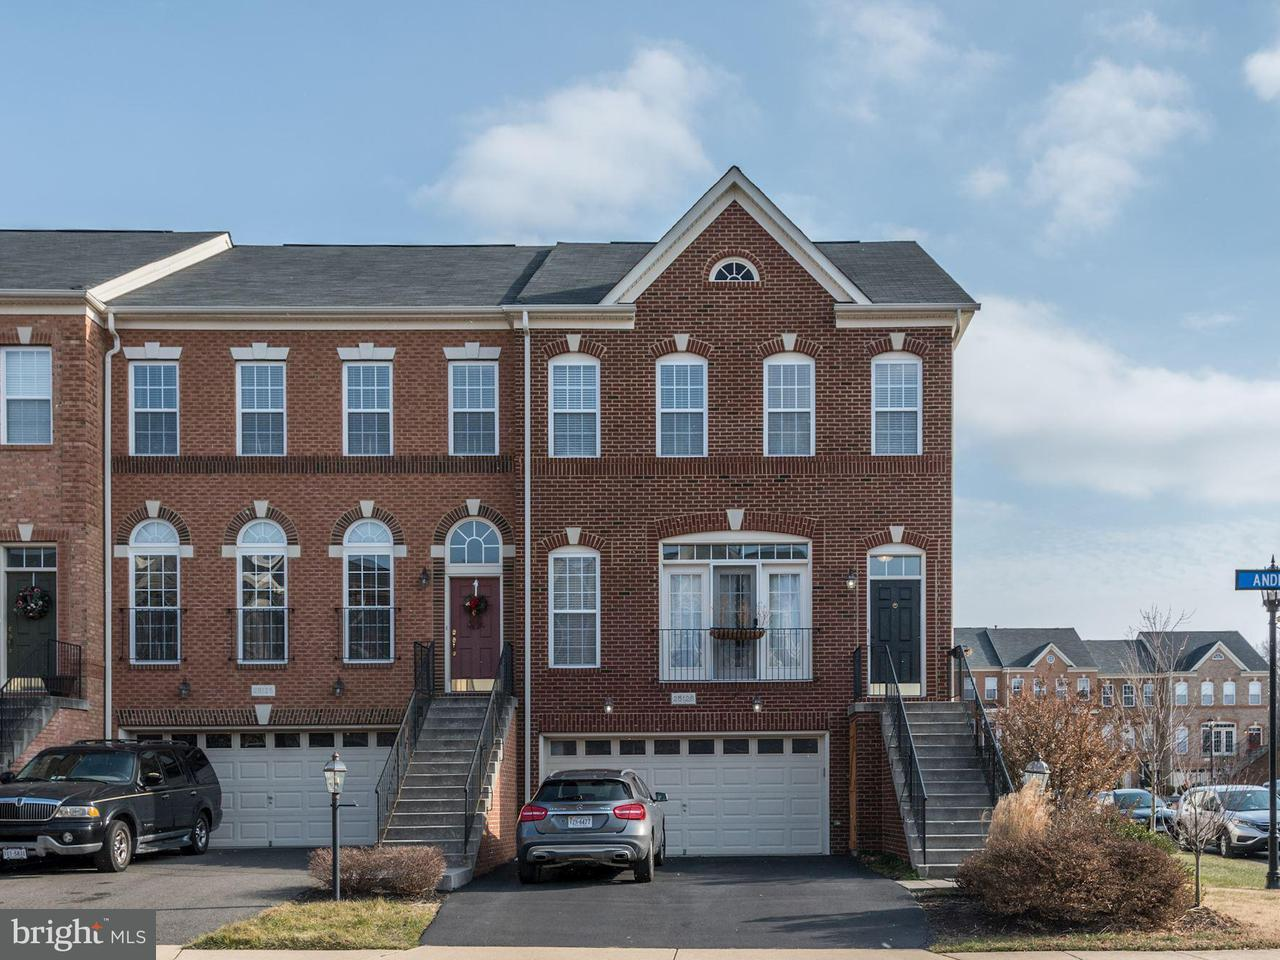 Townhouse for Sale at 25128 Andes Ter 25128 Andes Ter Aldie, Virginia 20105 United States